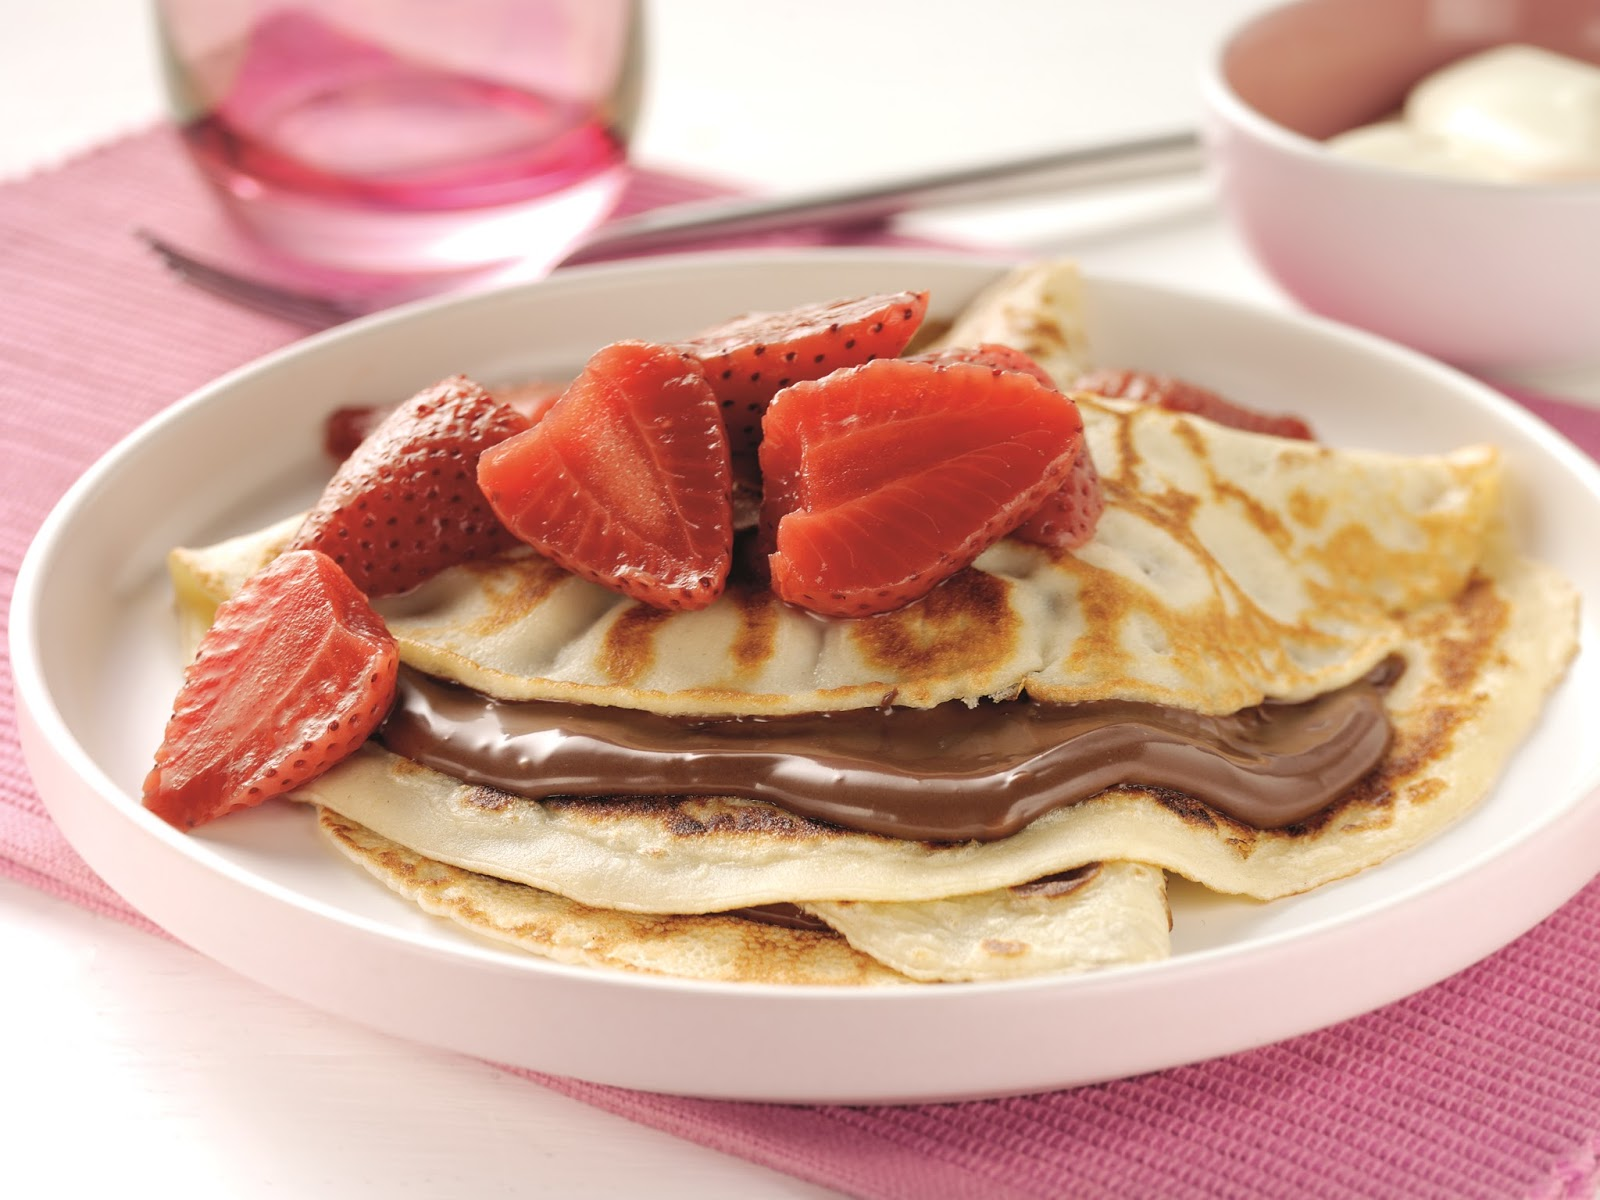 How To Make Some Quick And Easy Strawberry And Chocolate Pancakes